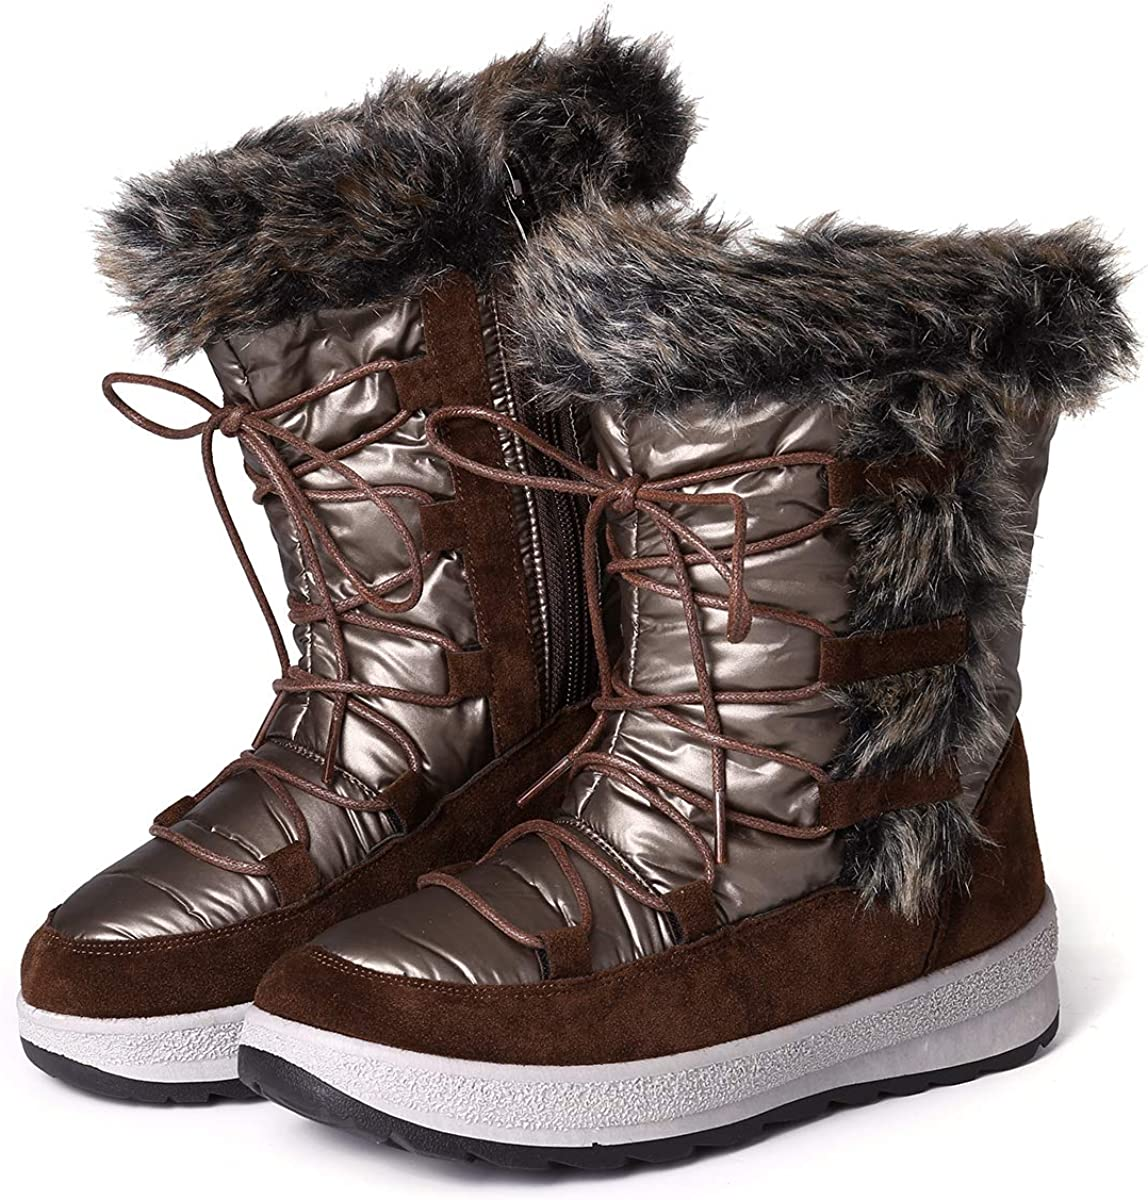 Camfosy Ankle Snow Boots for Women